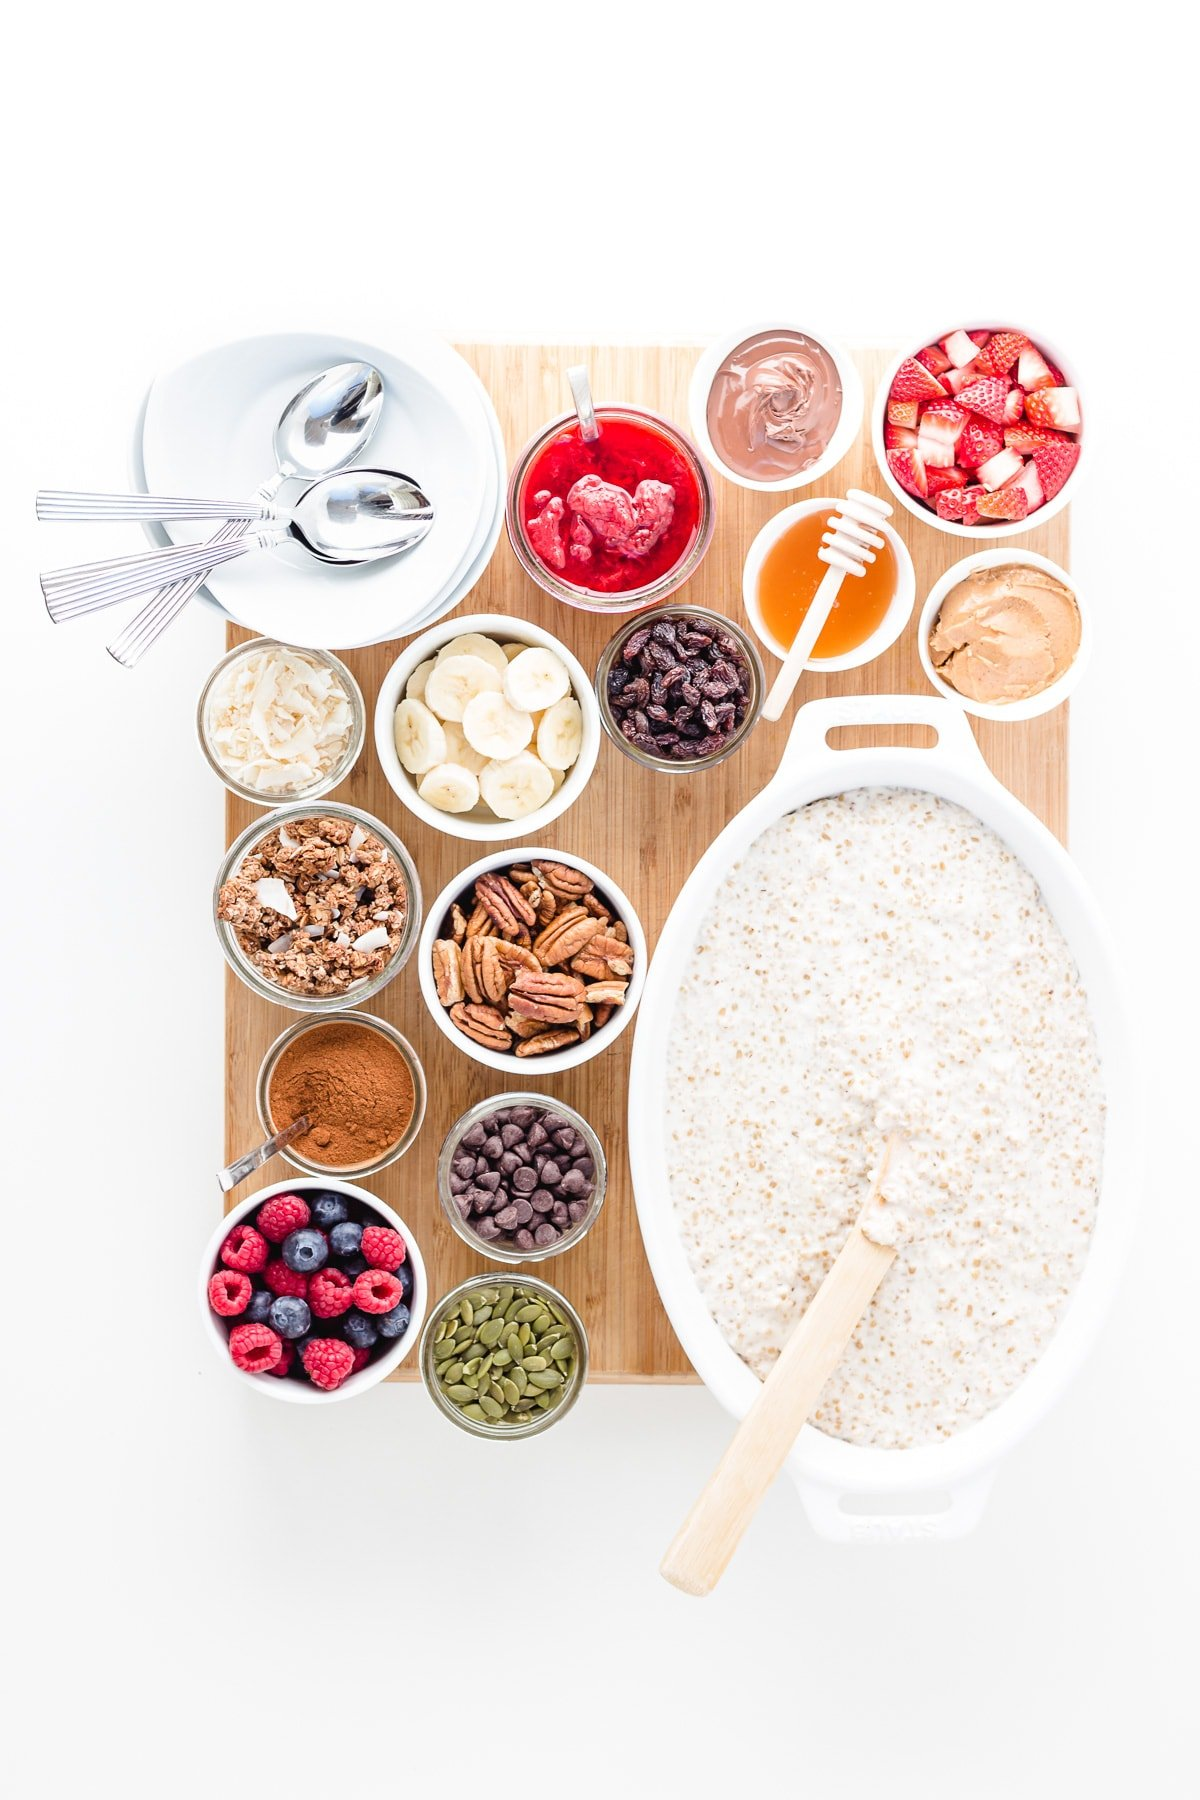 Wooden board topped with a large dish of steel cut oats, variety of small bowls of different toppings and a stack of serving bowls and spoons.